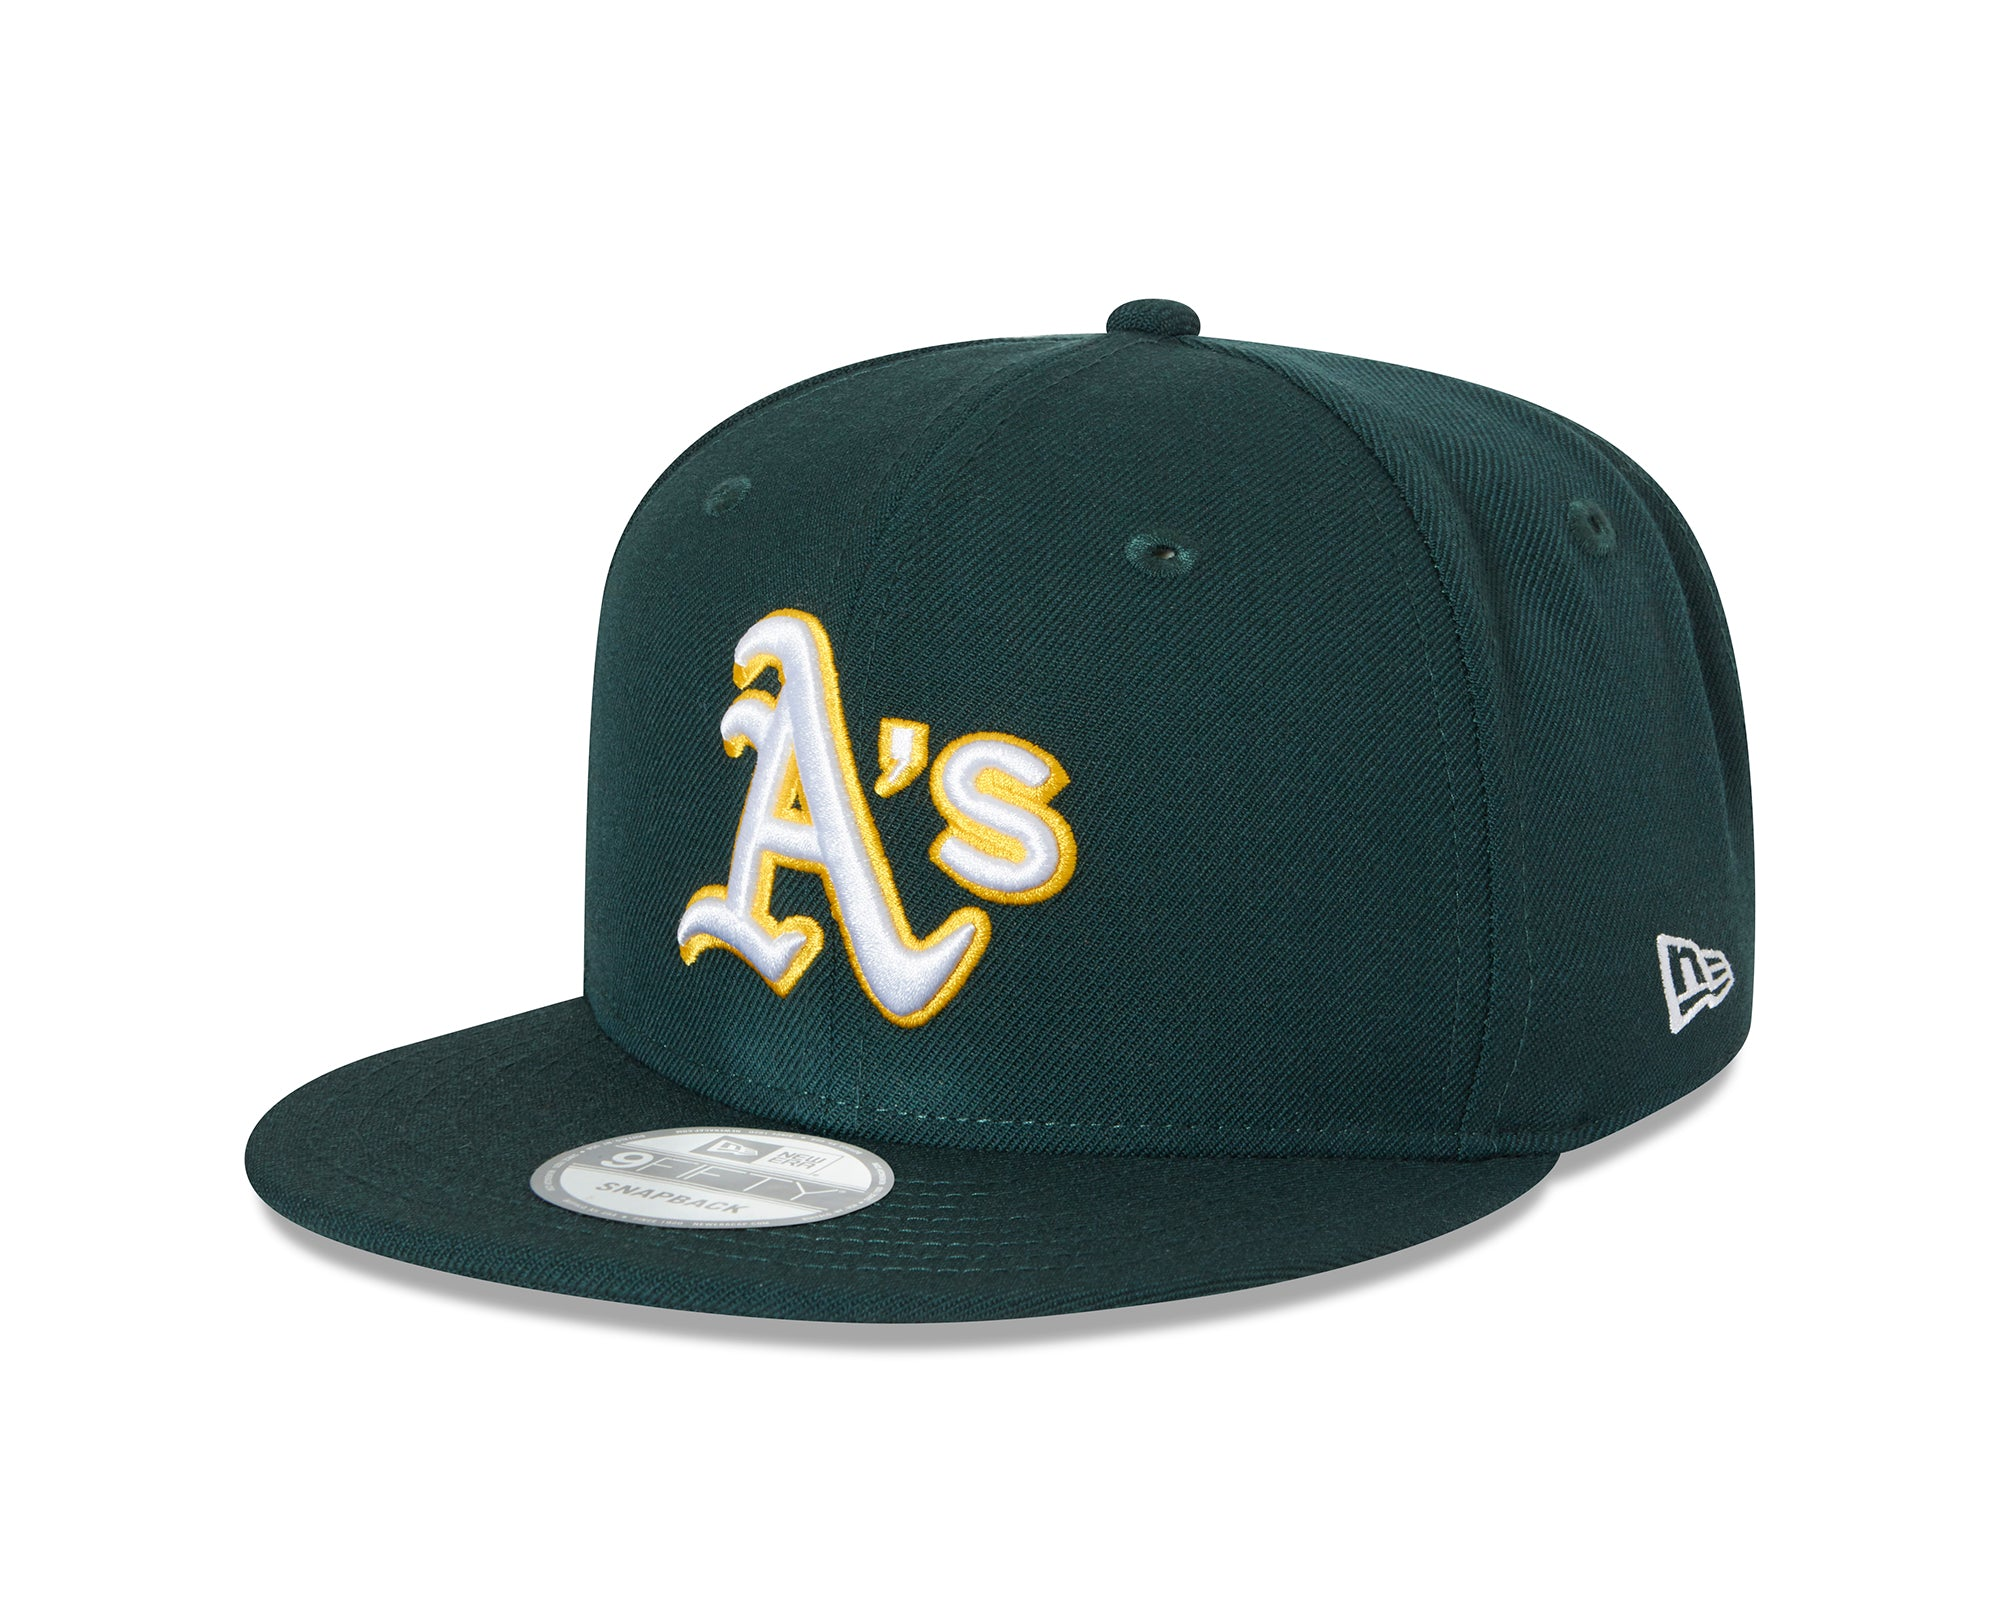 Oakland Athletics / 9FIFTY® Side Hit